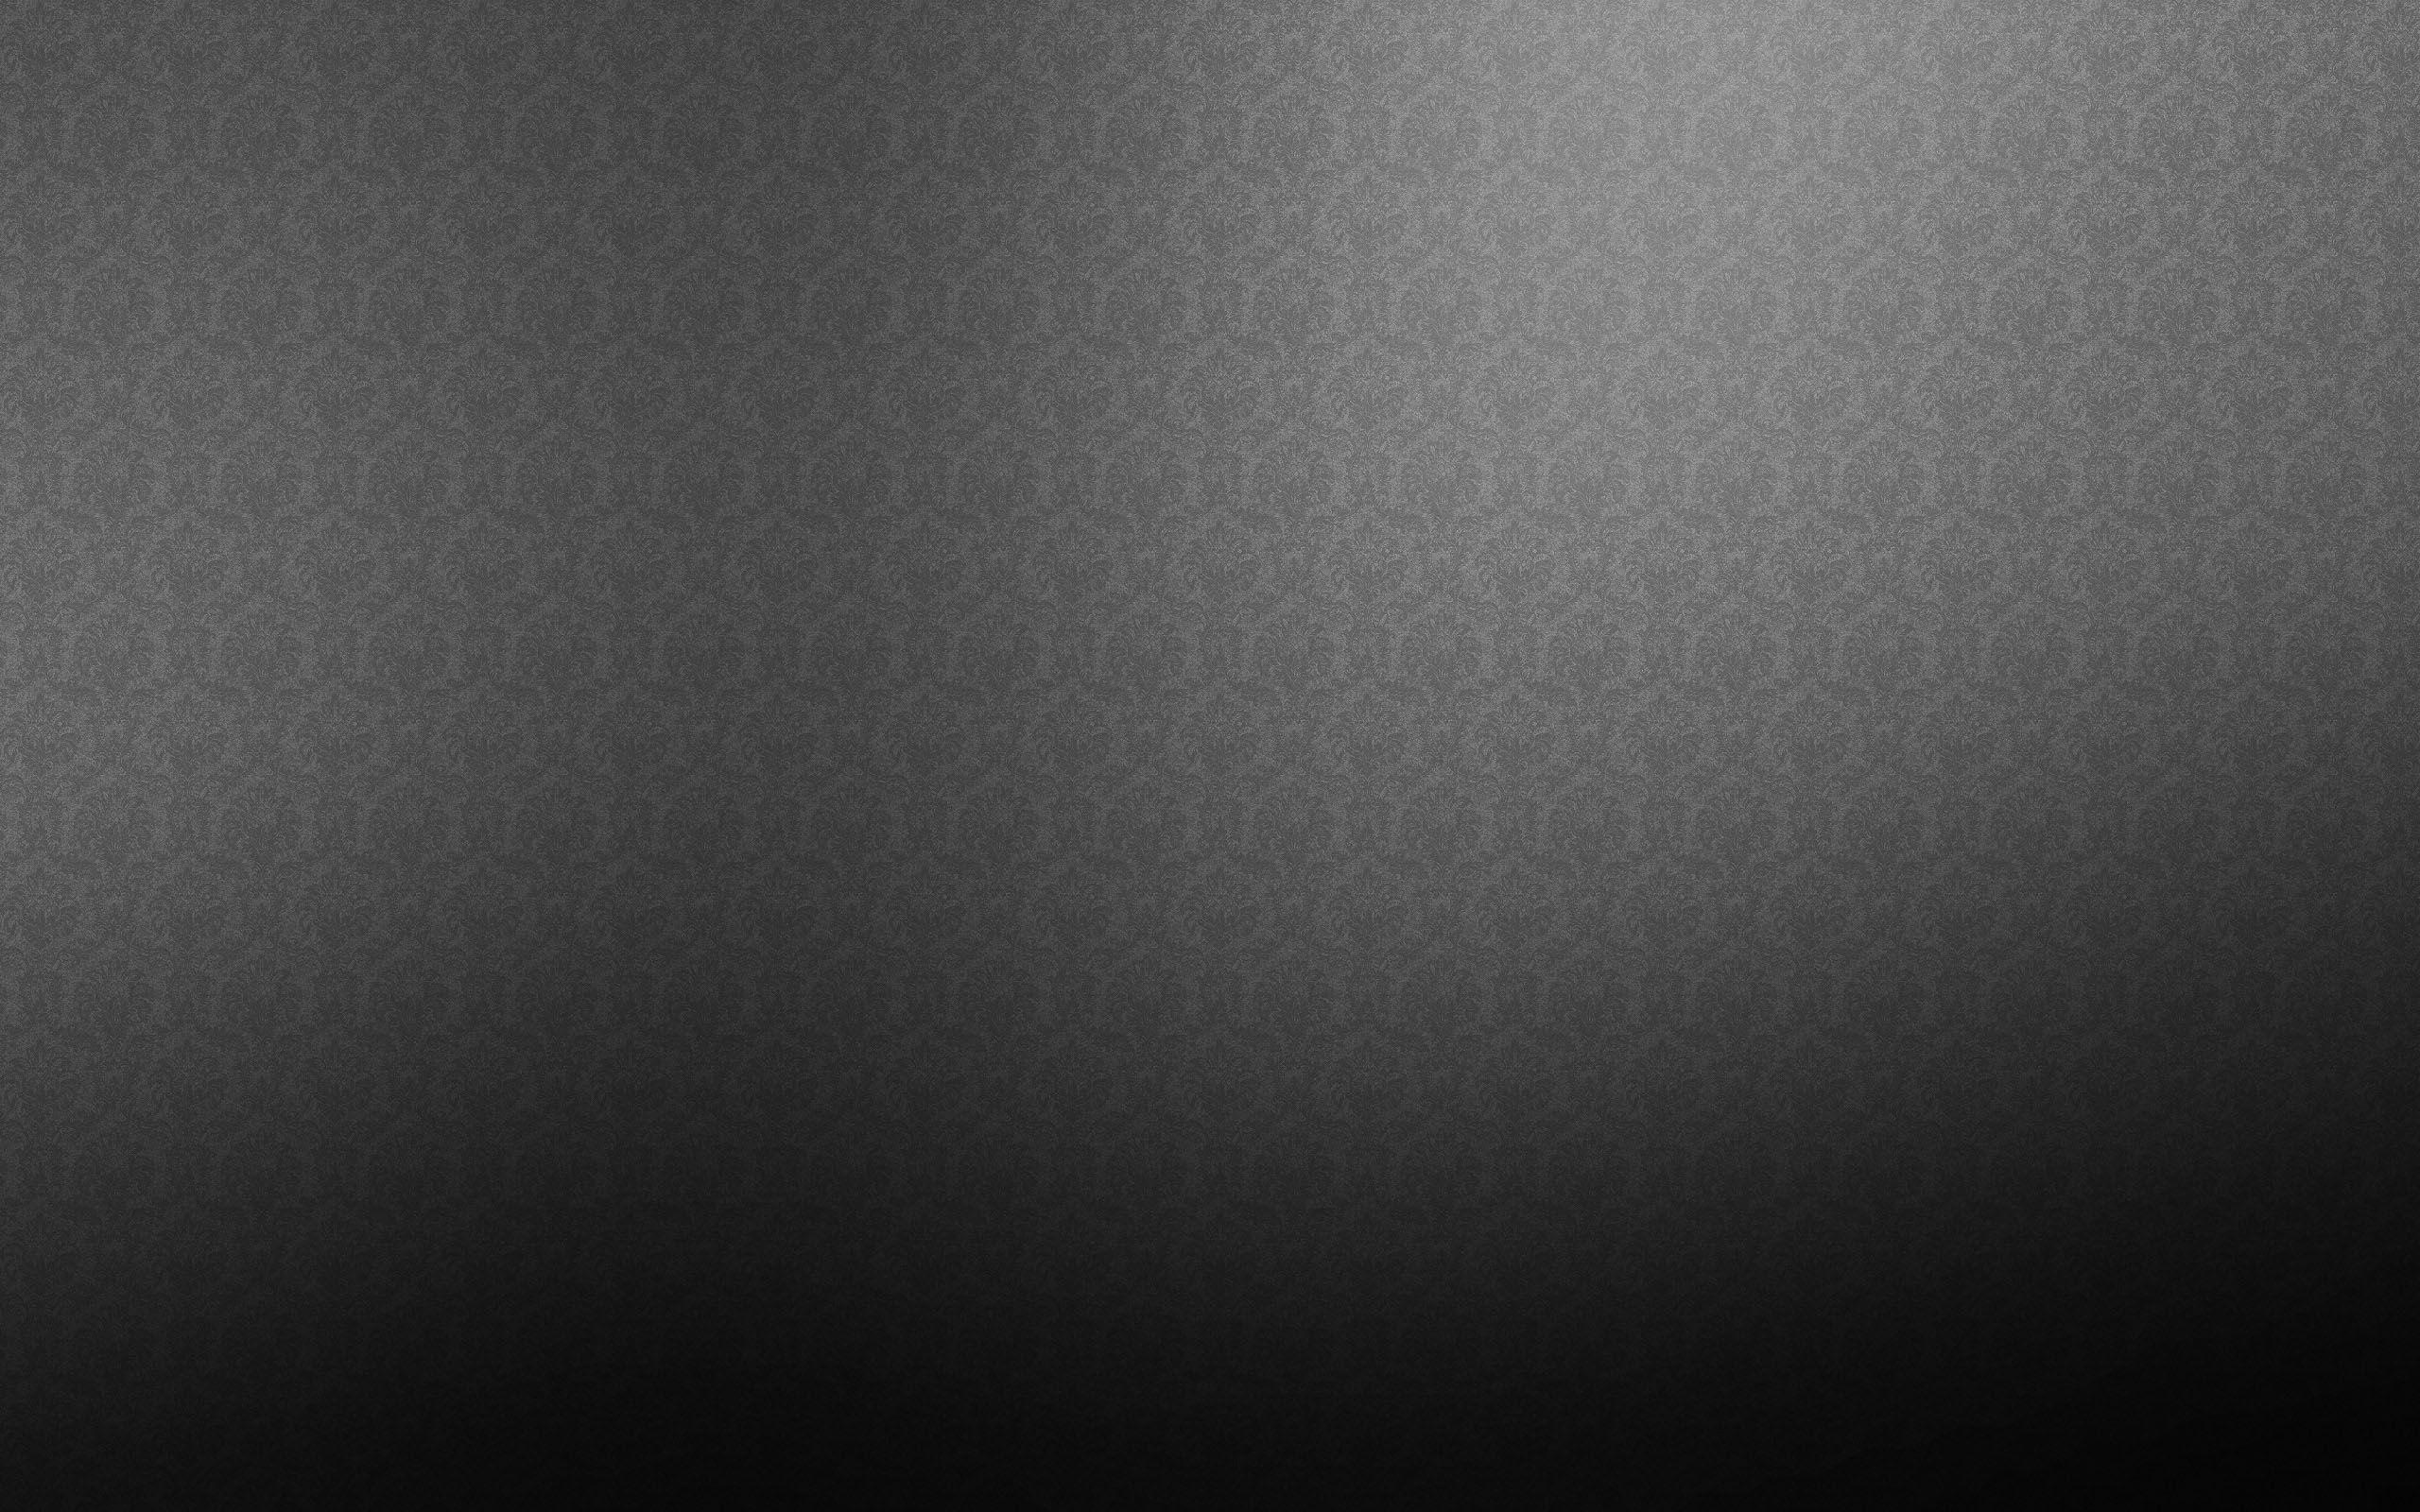 Black Gradient Wallpapers 2560x1600